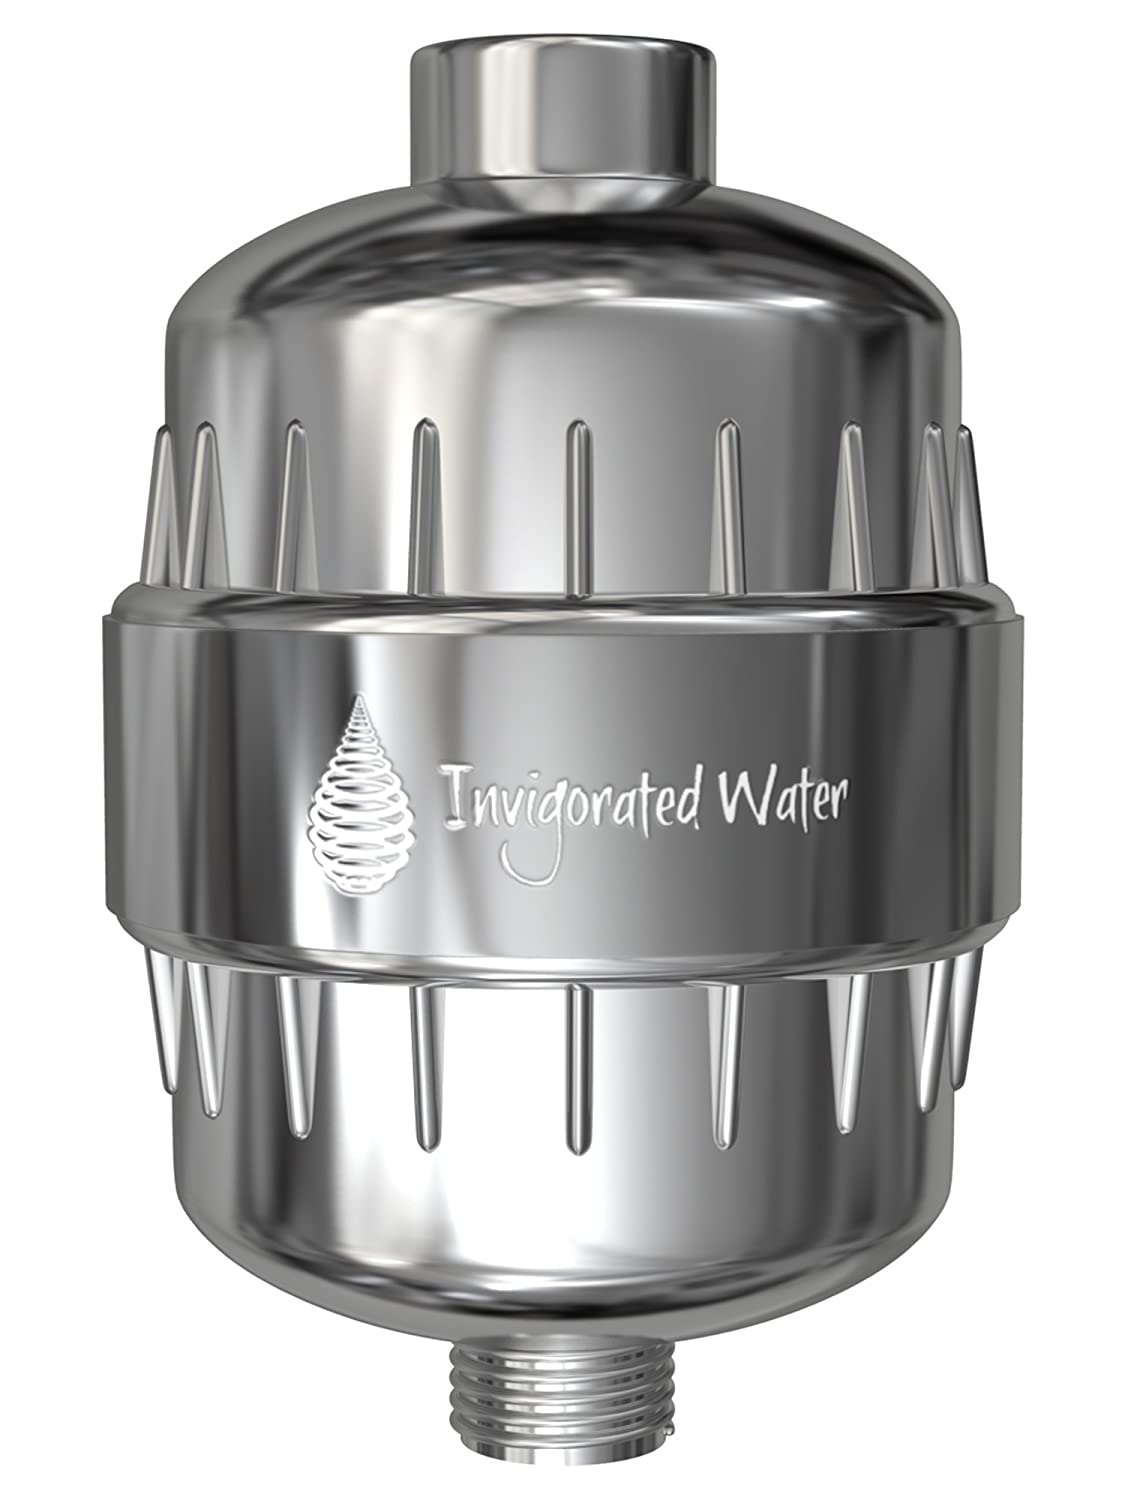 pH Energize Multi-Stage Shower Filter – Filters Chlorine, Chloramine, Fluoride, Heavy Metals, Bacteria & Viruses – Softens Hard Water – Increases pH & ORP – Easy Installation - Fits Any Shower Head Invigorated Living